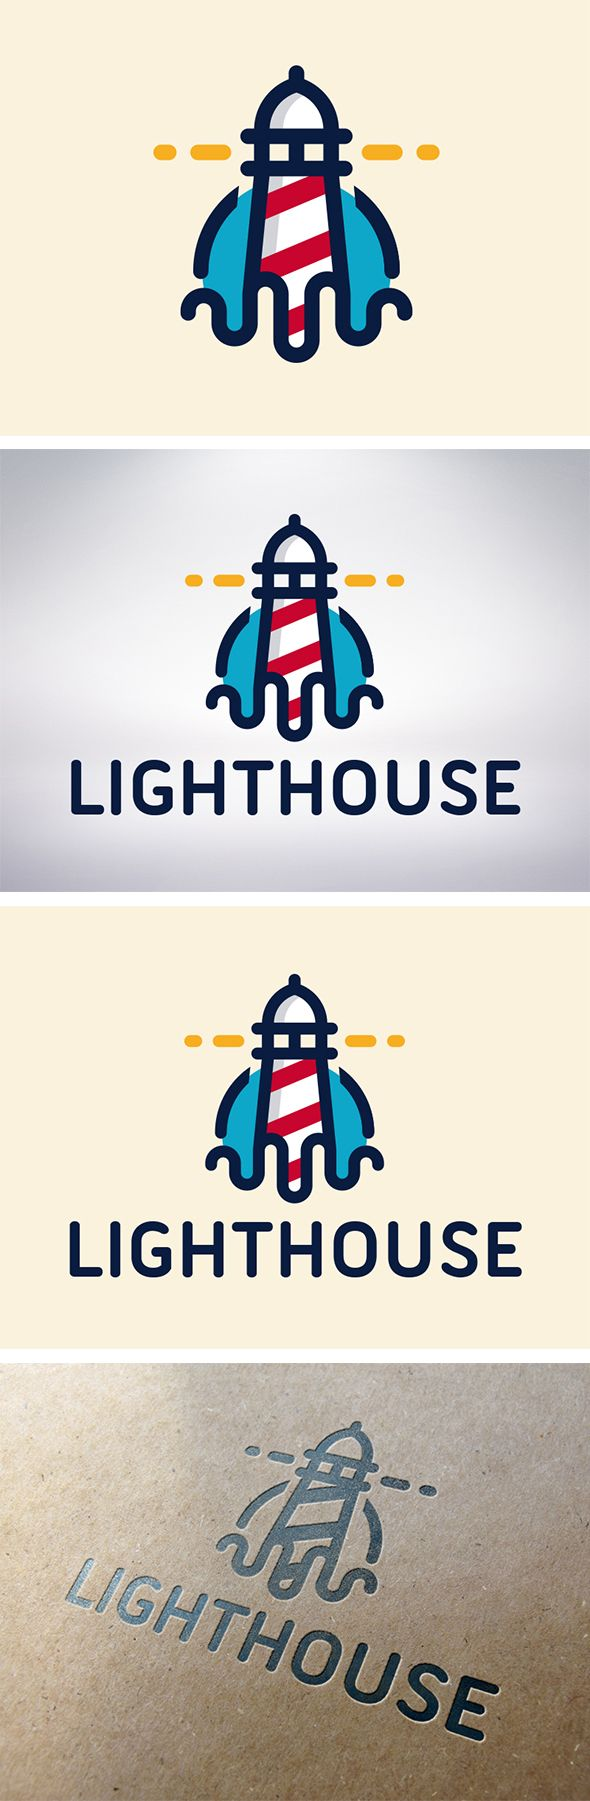 Lighthouse (On Sale Logo) by BossTwinsArt , via Behance -- Curated by : Rapid Printing Kelowna 129-1889 Springfield Road Kelowna,BC V1Y 5V5 (250) 860-2200